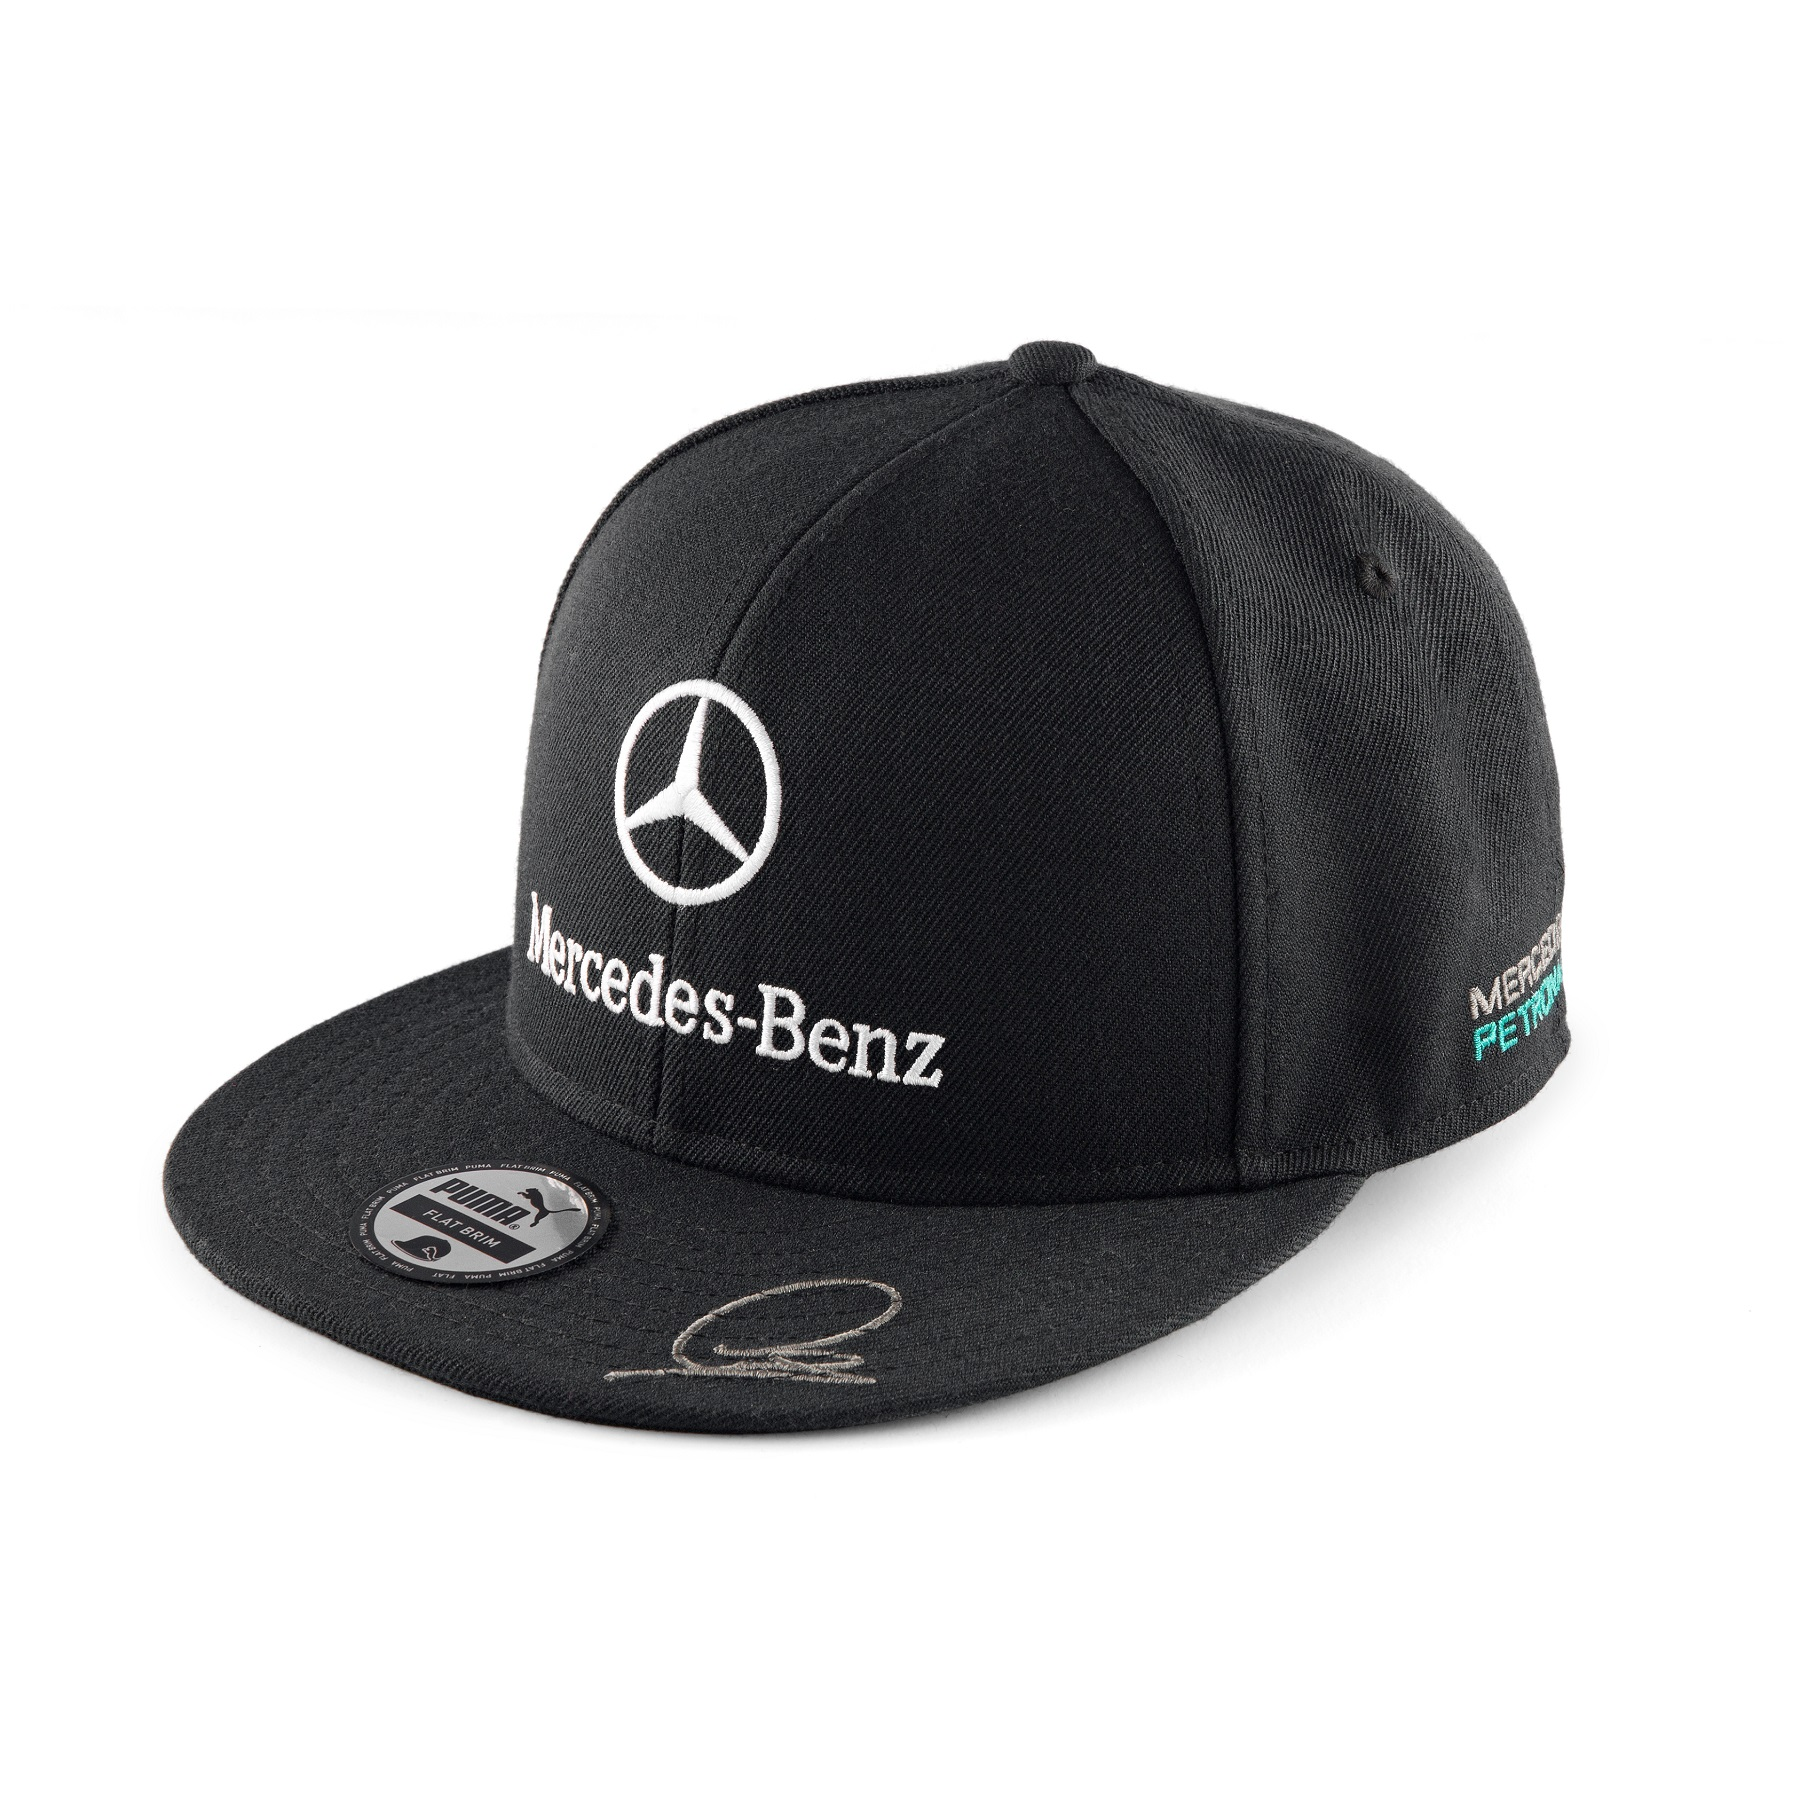 2014 lewis hamilton puma flat brim cap mercedes benz amg for Mercedes benz caps hats